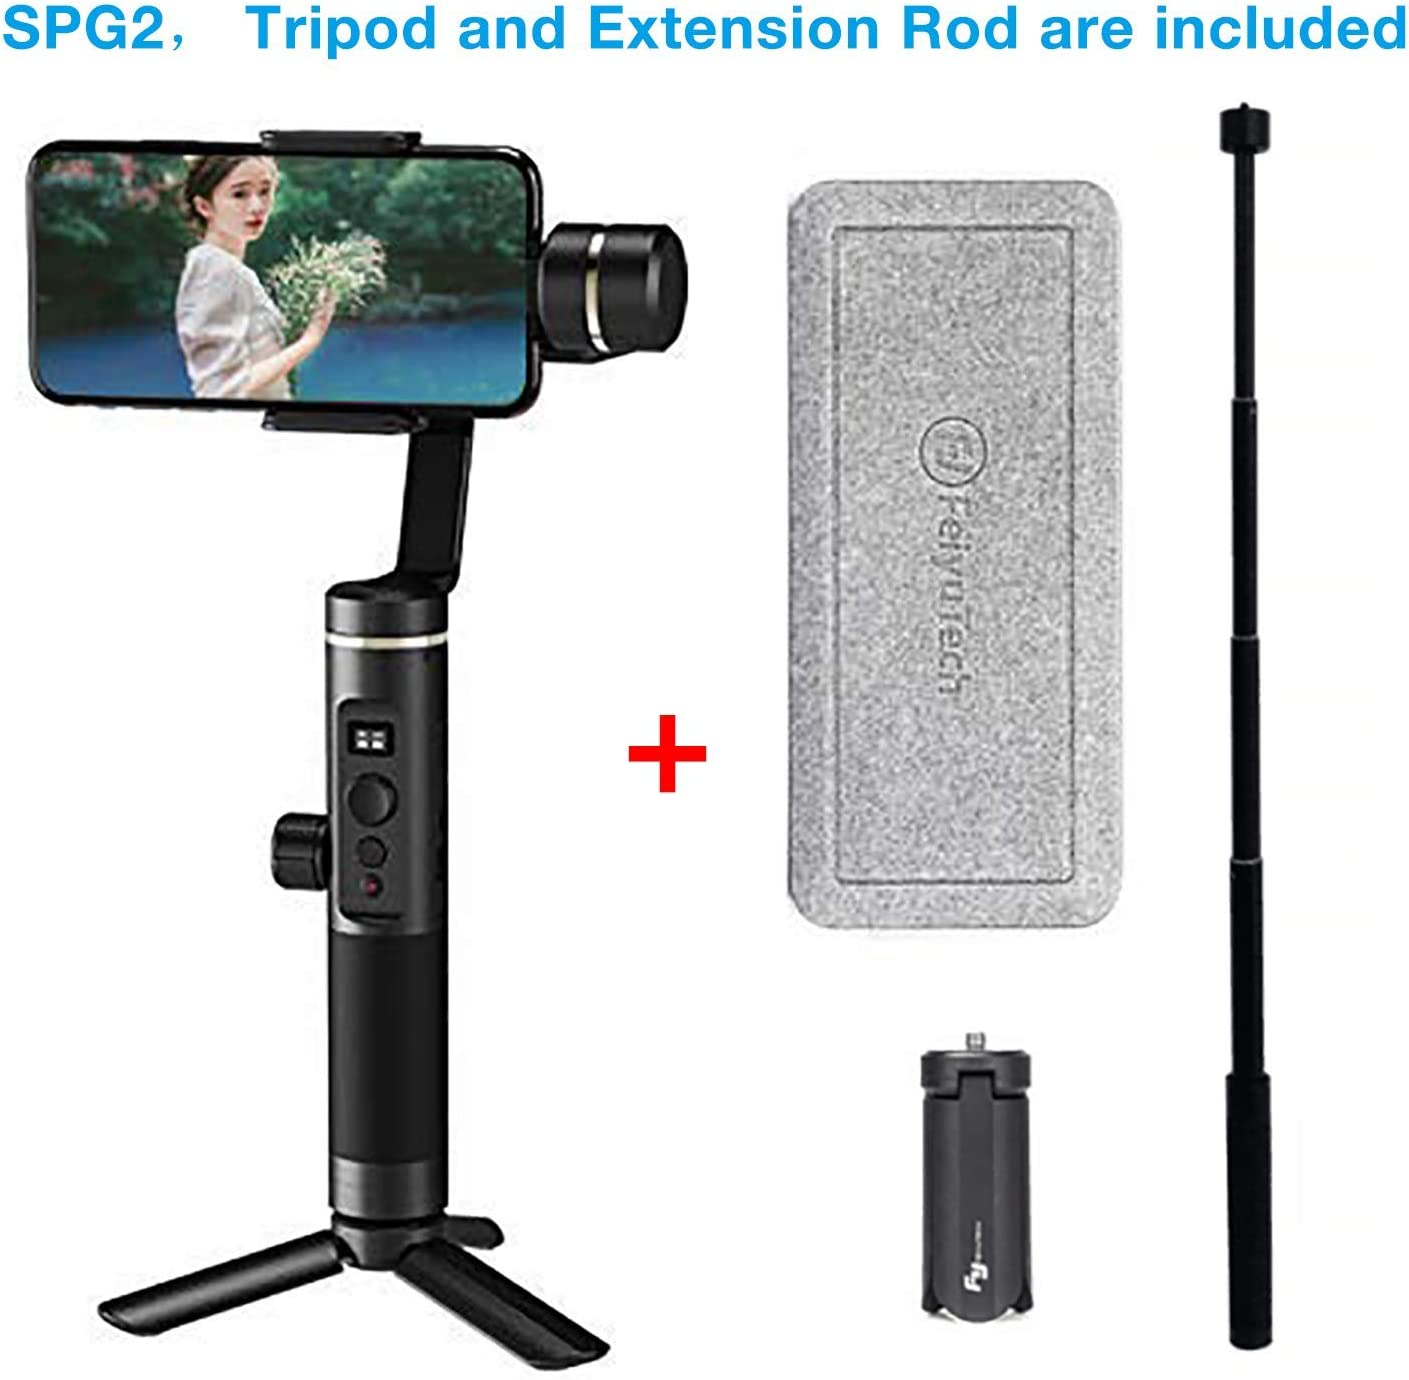 Feiyu spg2 Gimbal for Smartphone/iPhone,Including Tripod Stand and Extension Rod armbrand: Amazon.es: Electrónica